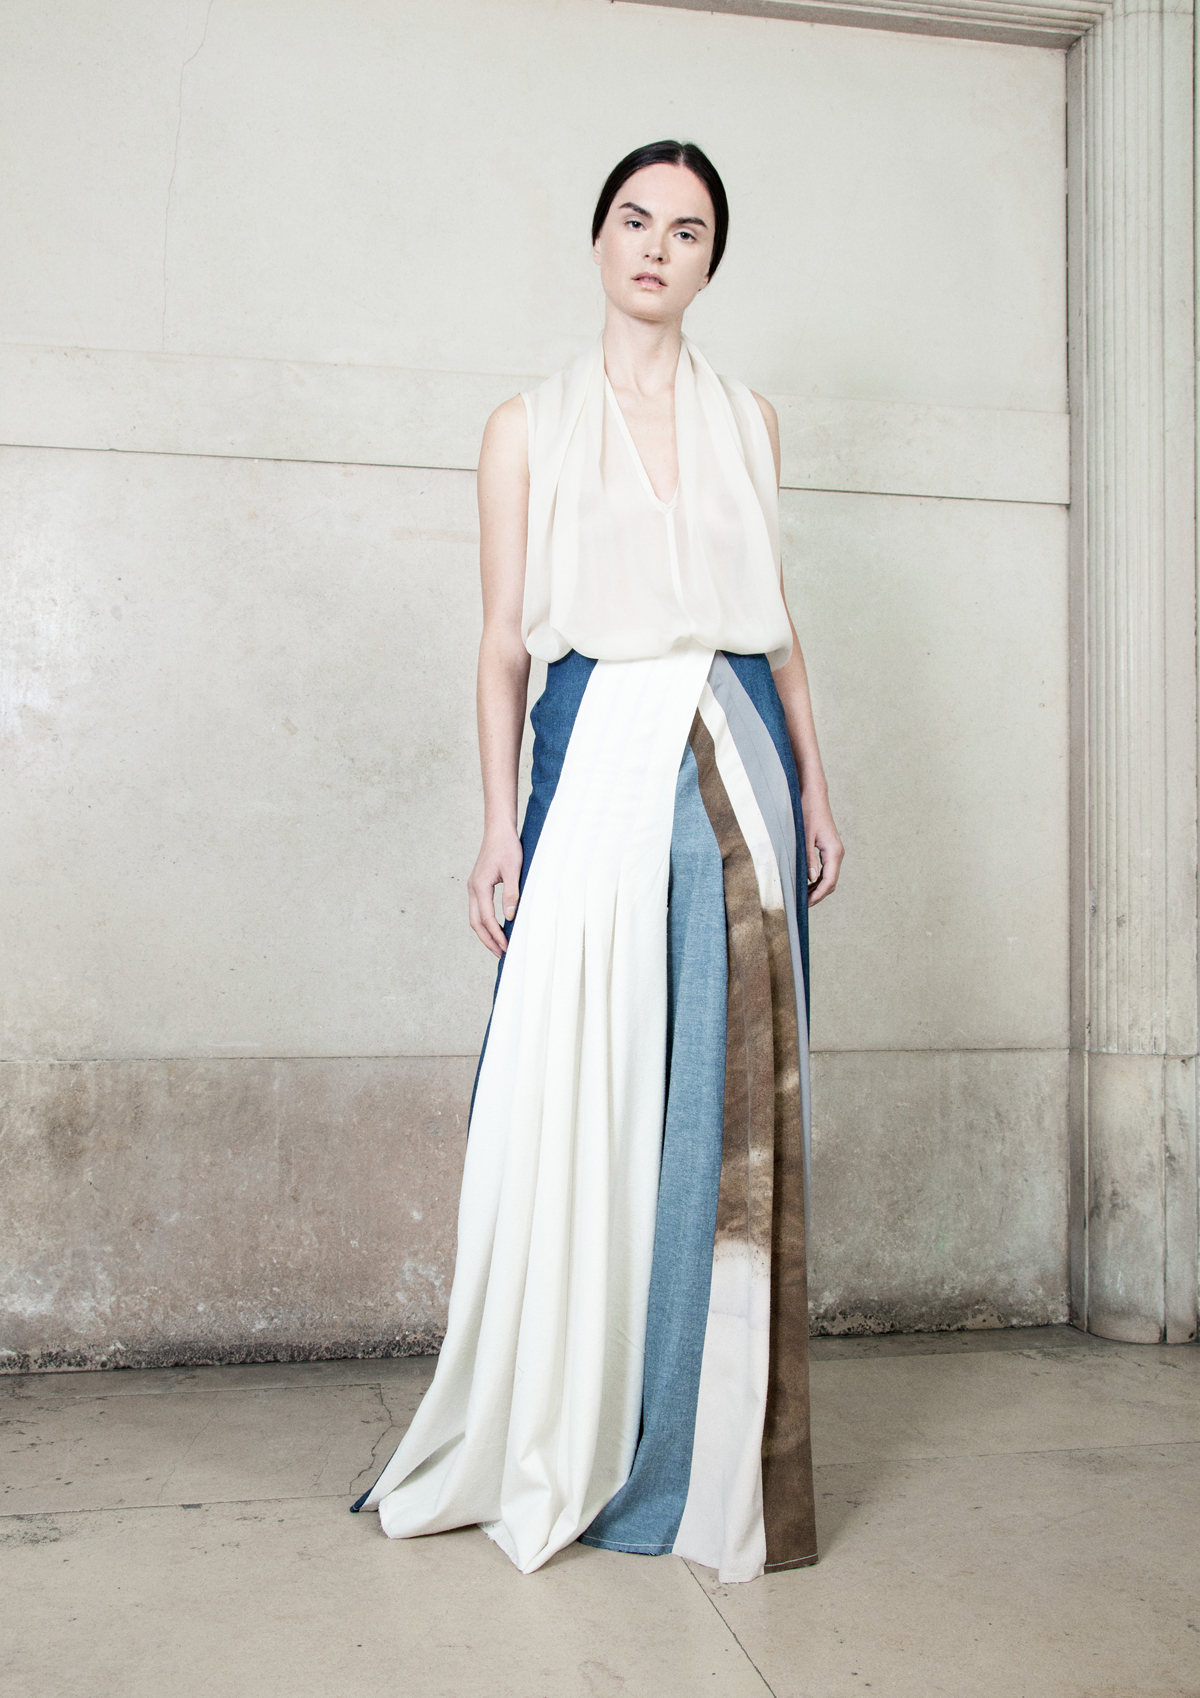 KATRIEN VAN HECKE  // BE     Modern artisanal luxury with a strong focus on hand dyed dresses using silk, wools and recycled blends and natural dyes.